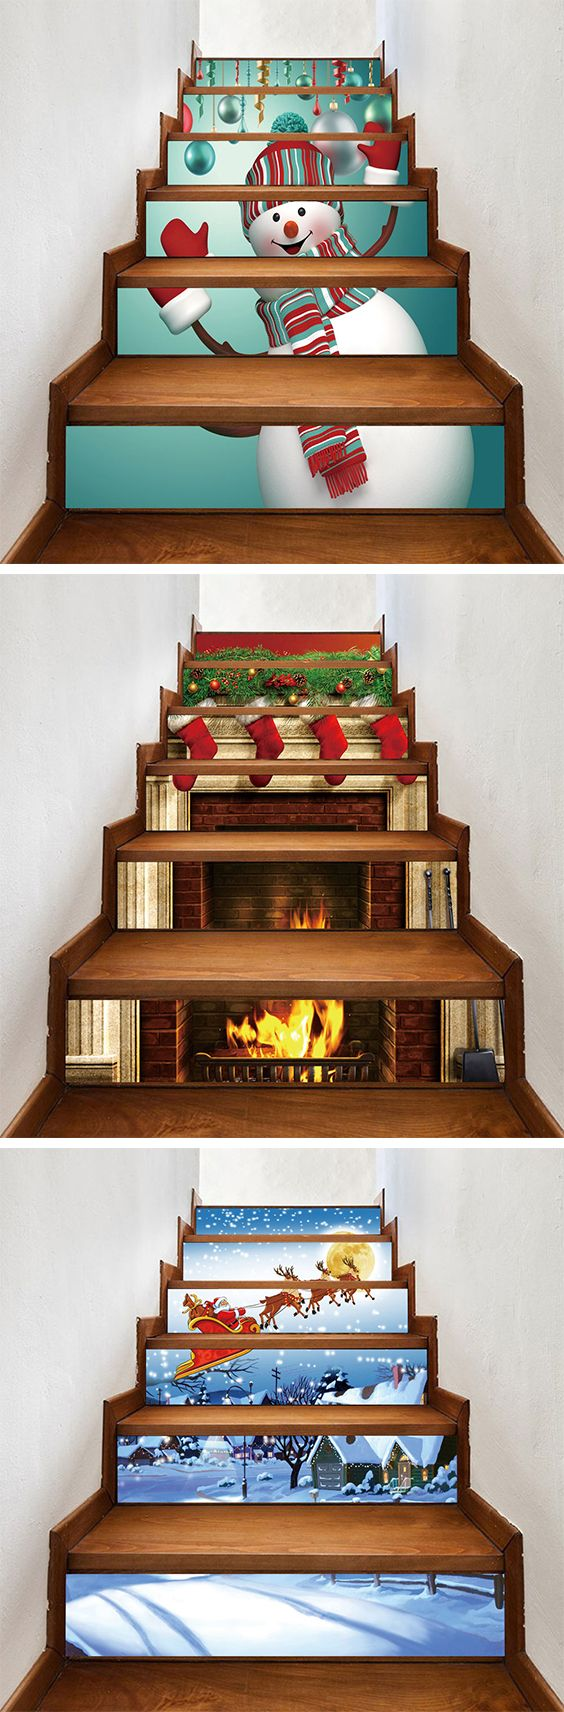 50% OFF Christmas Stair Stickers,Free Shipping Worldwide.